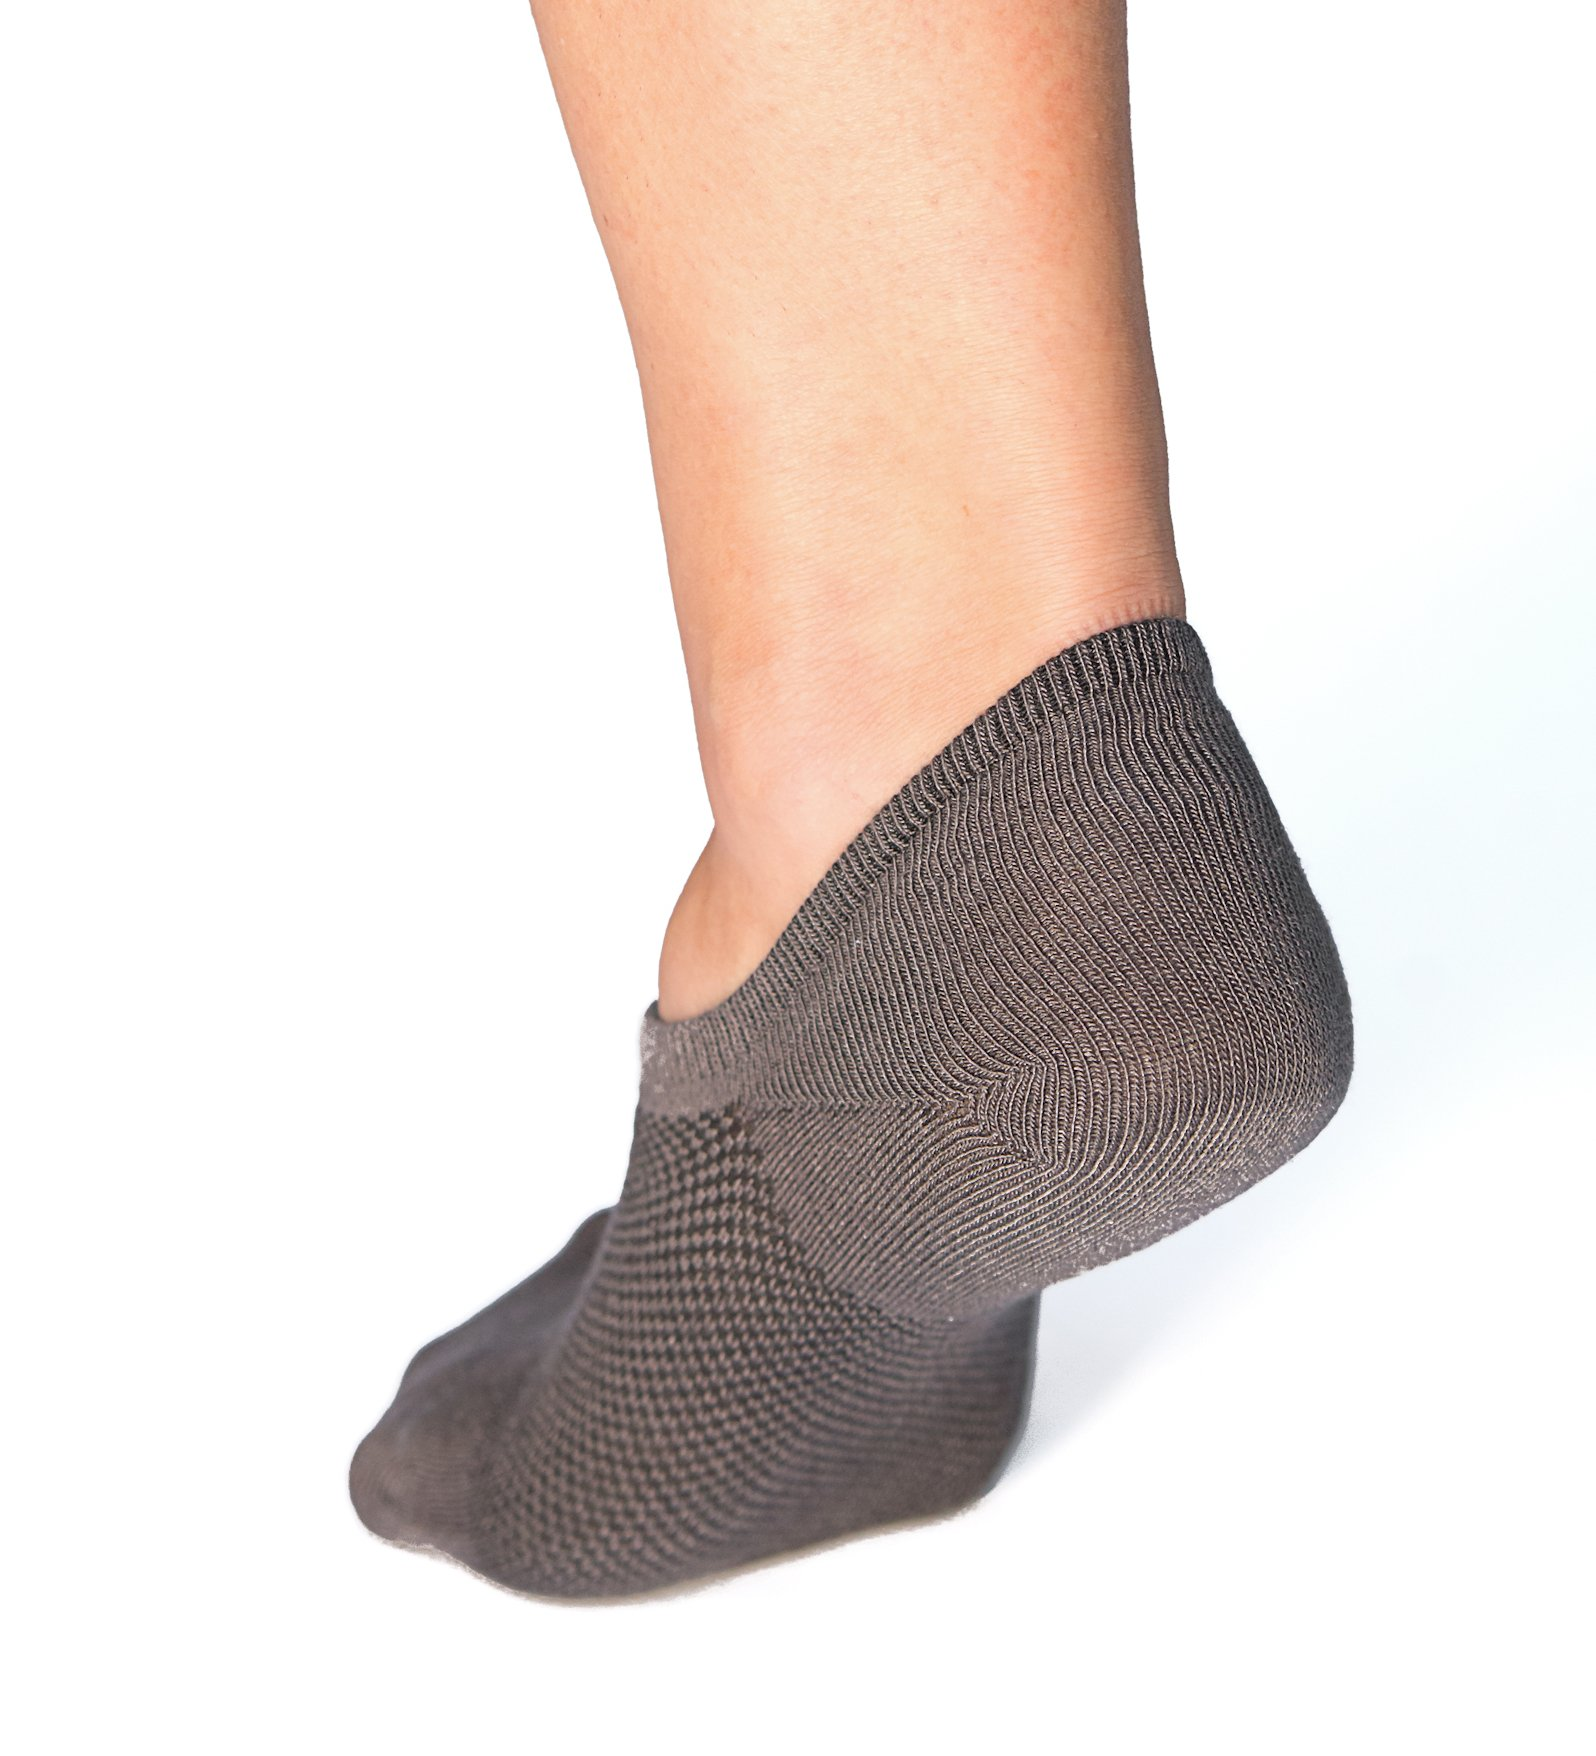 Bam&bü Women's Premium Bamboo No Show Casual Socks - 3 or 4 pair pack - Non-Slip by bam & bü (Image #7)